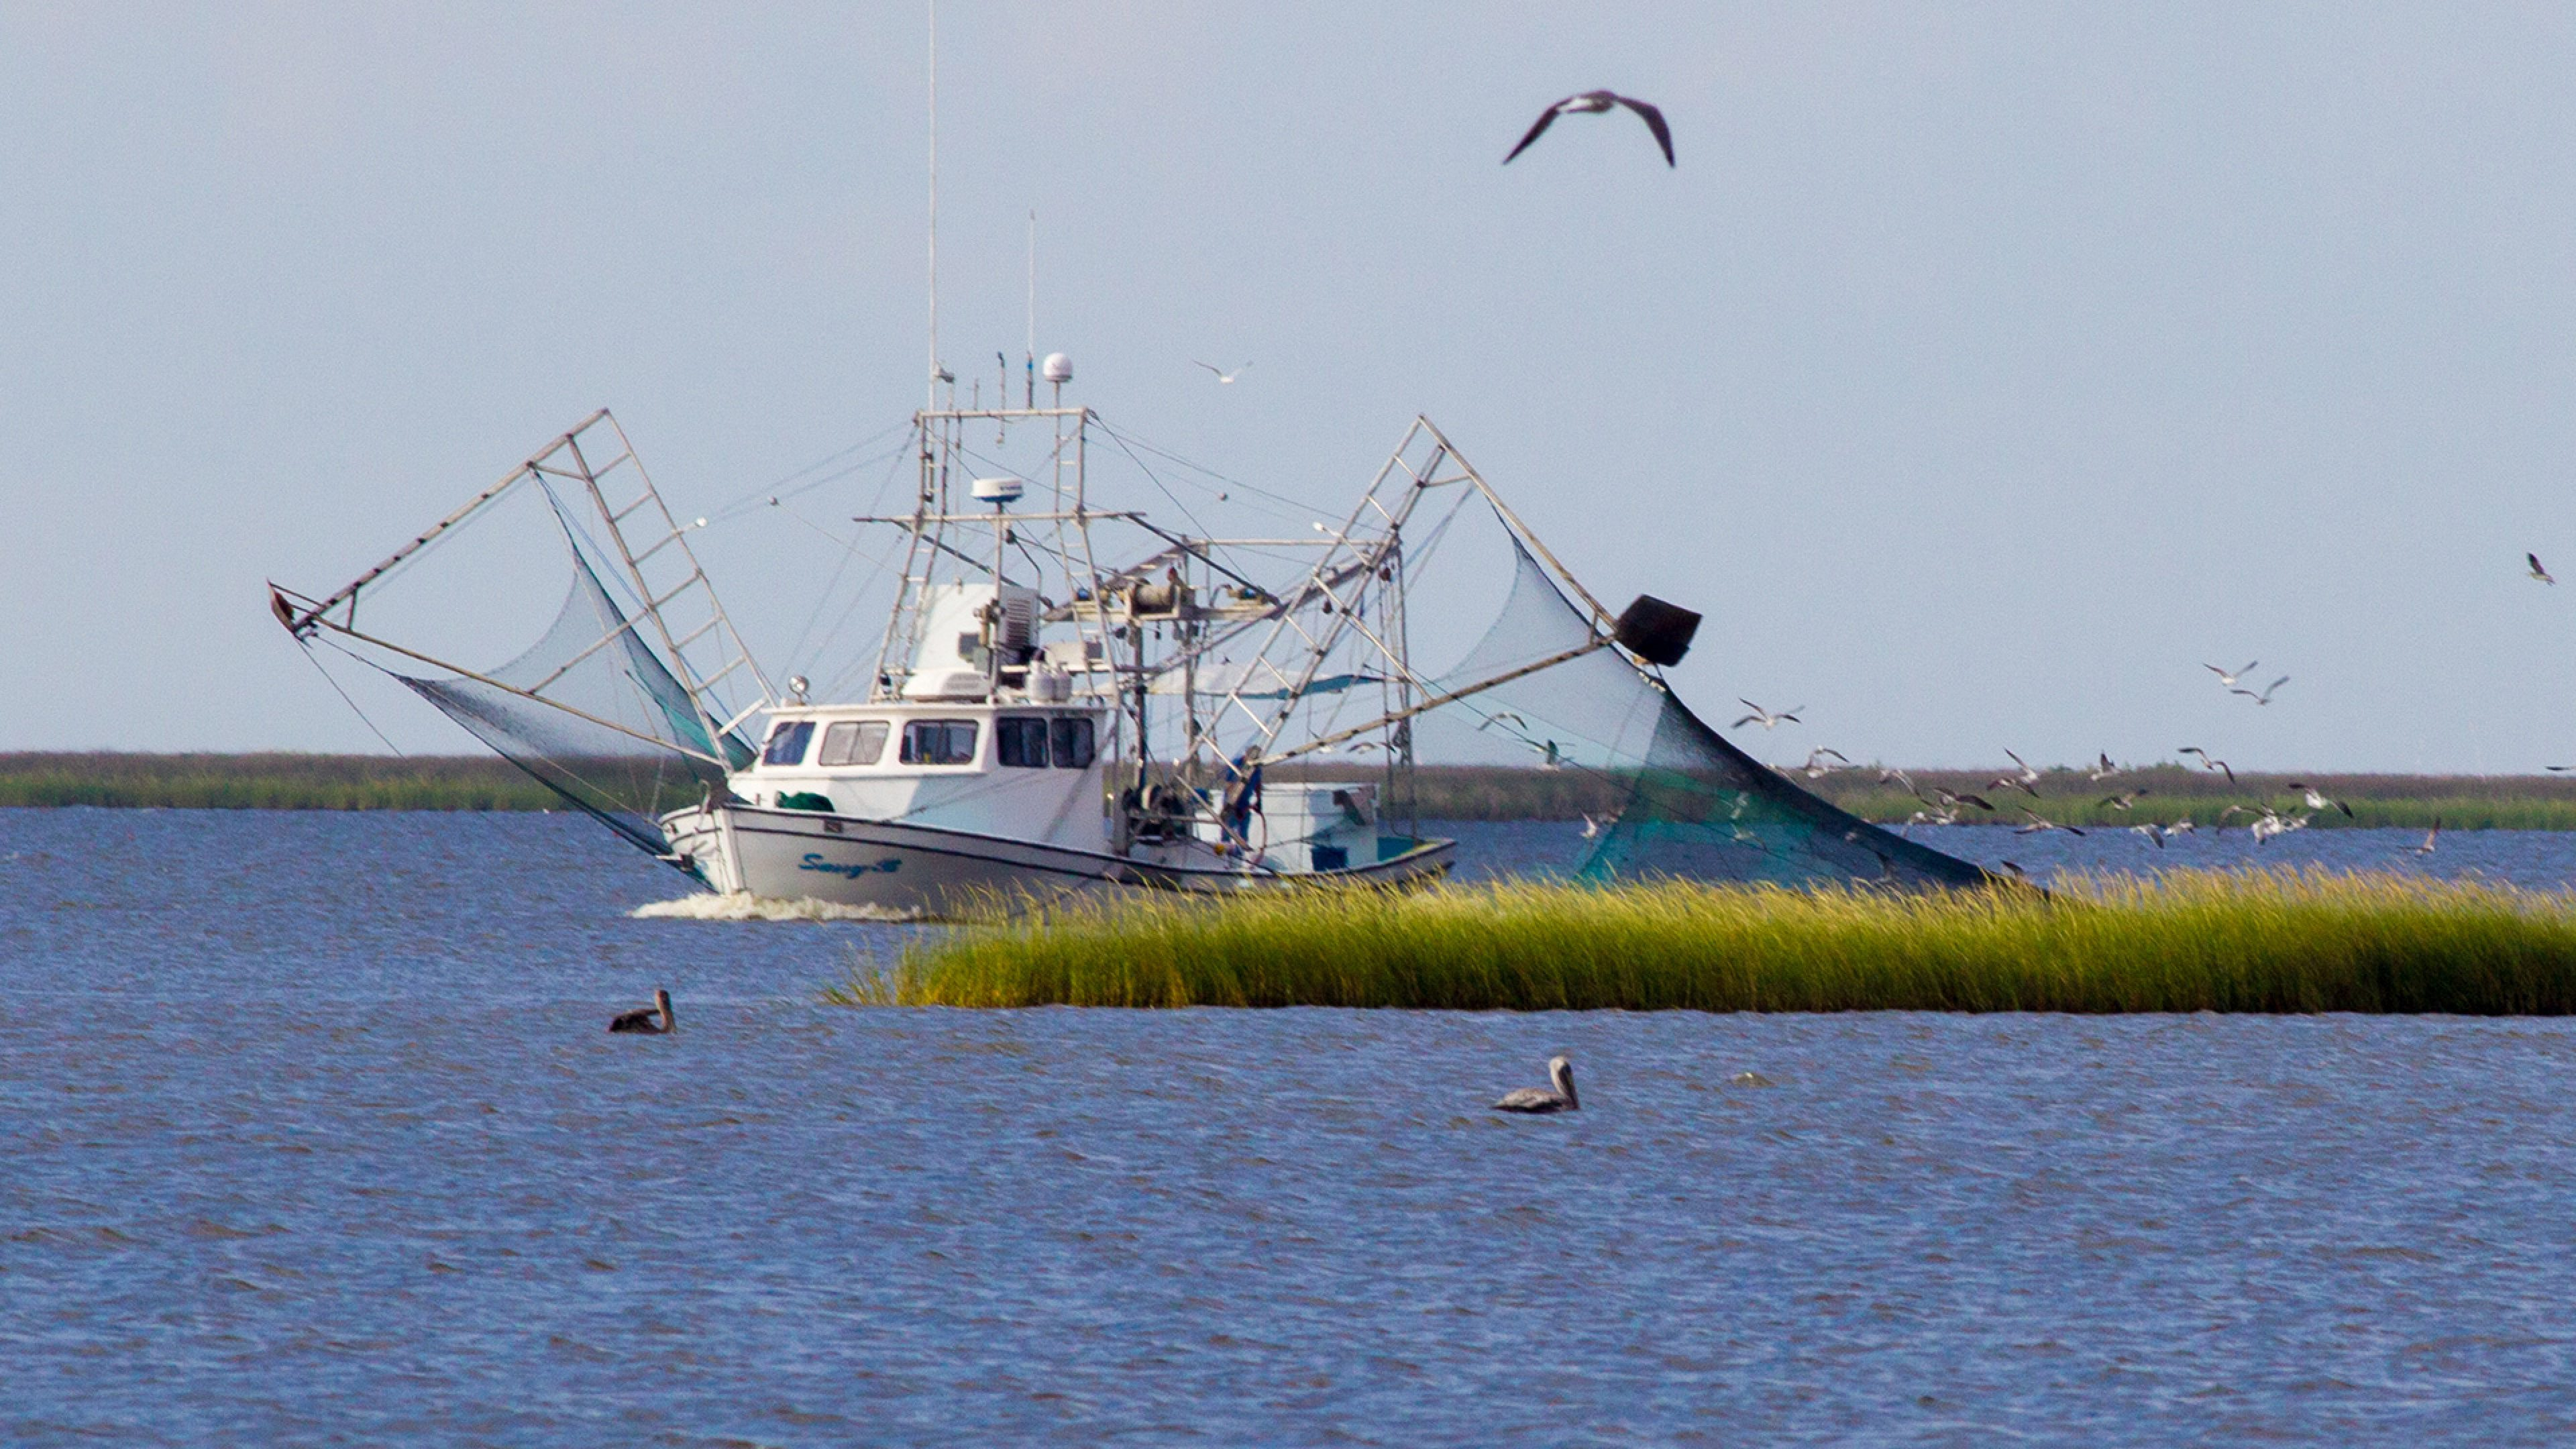 Louisiana shrimper boat